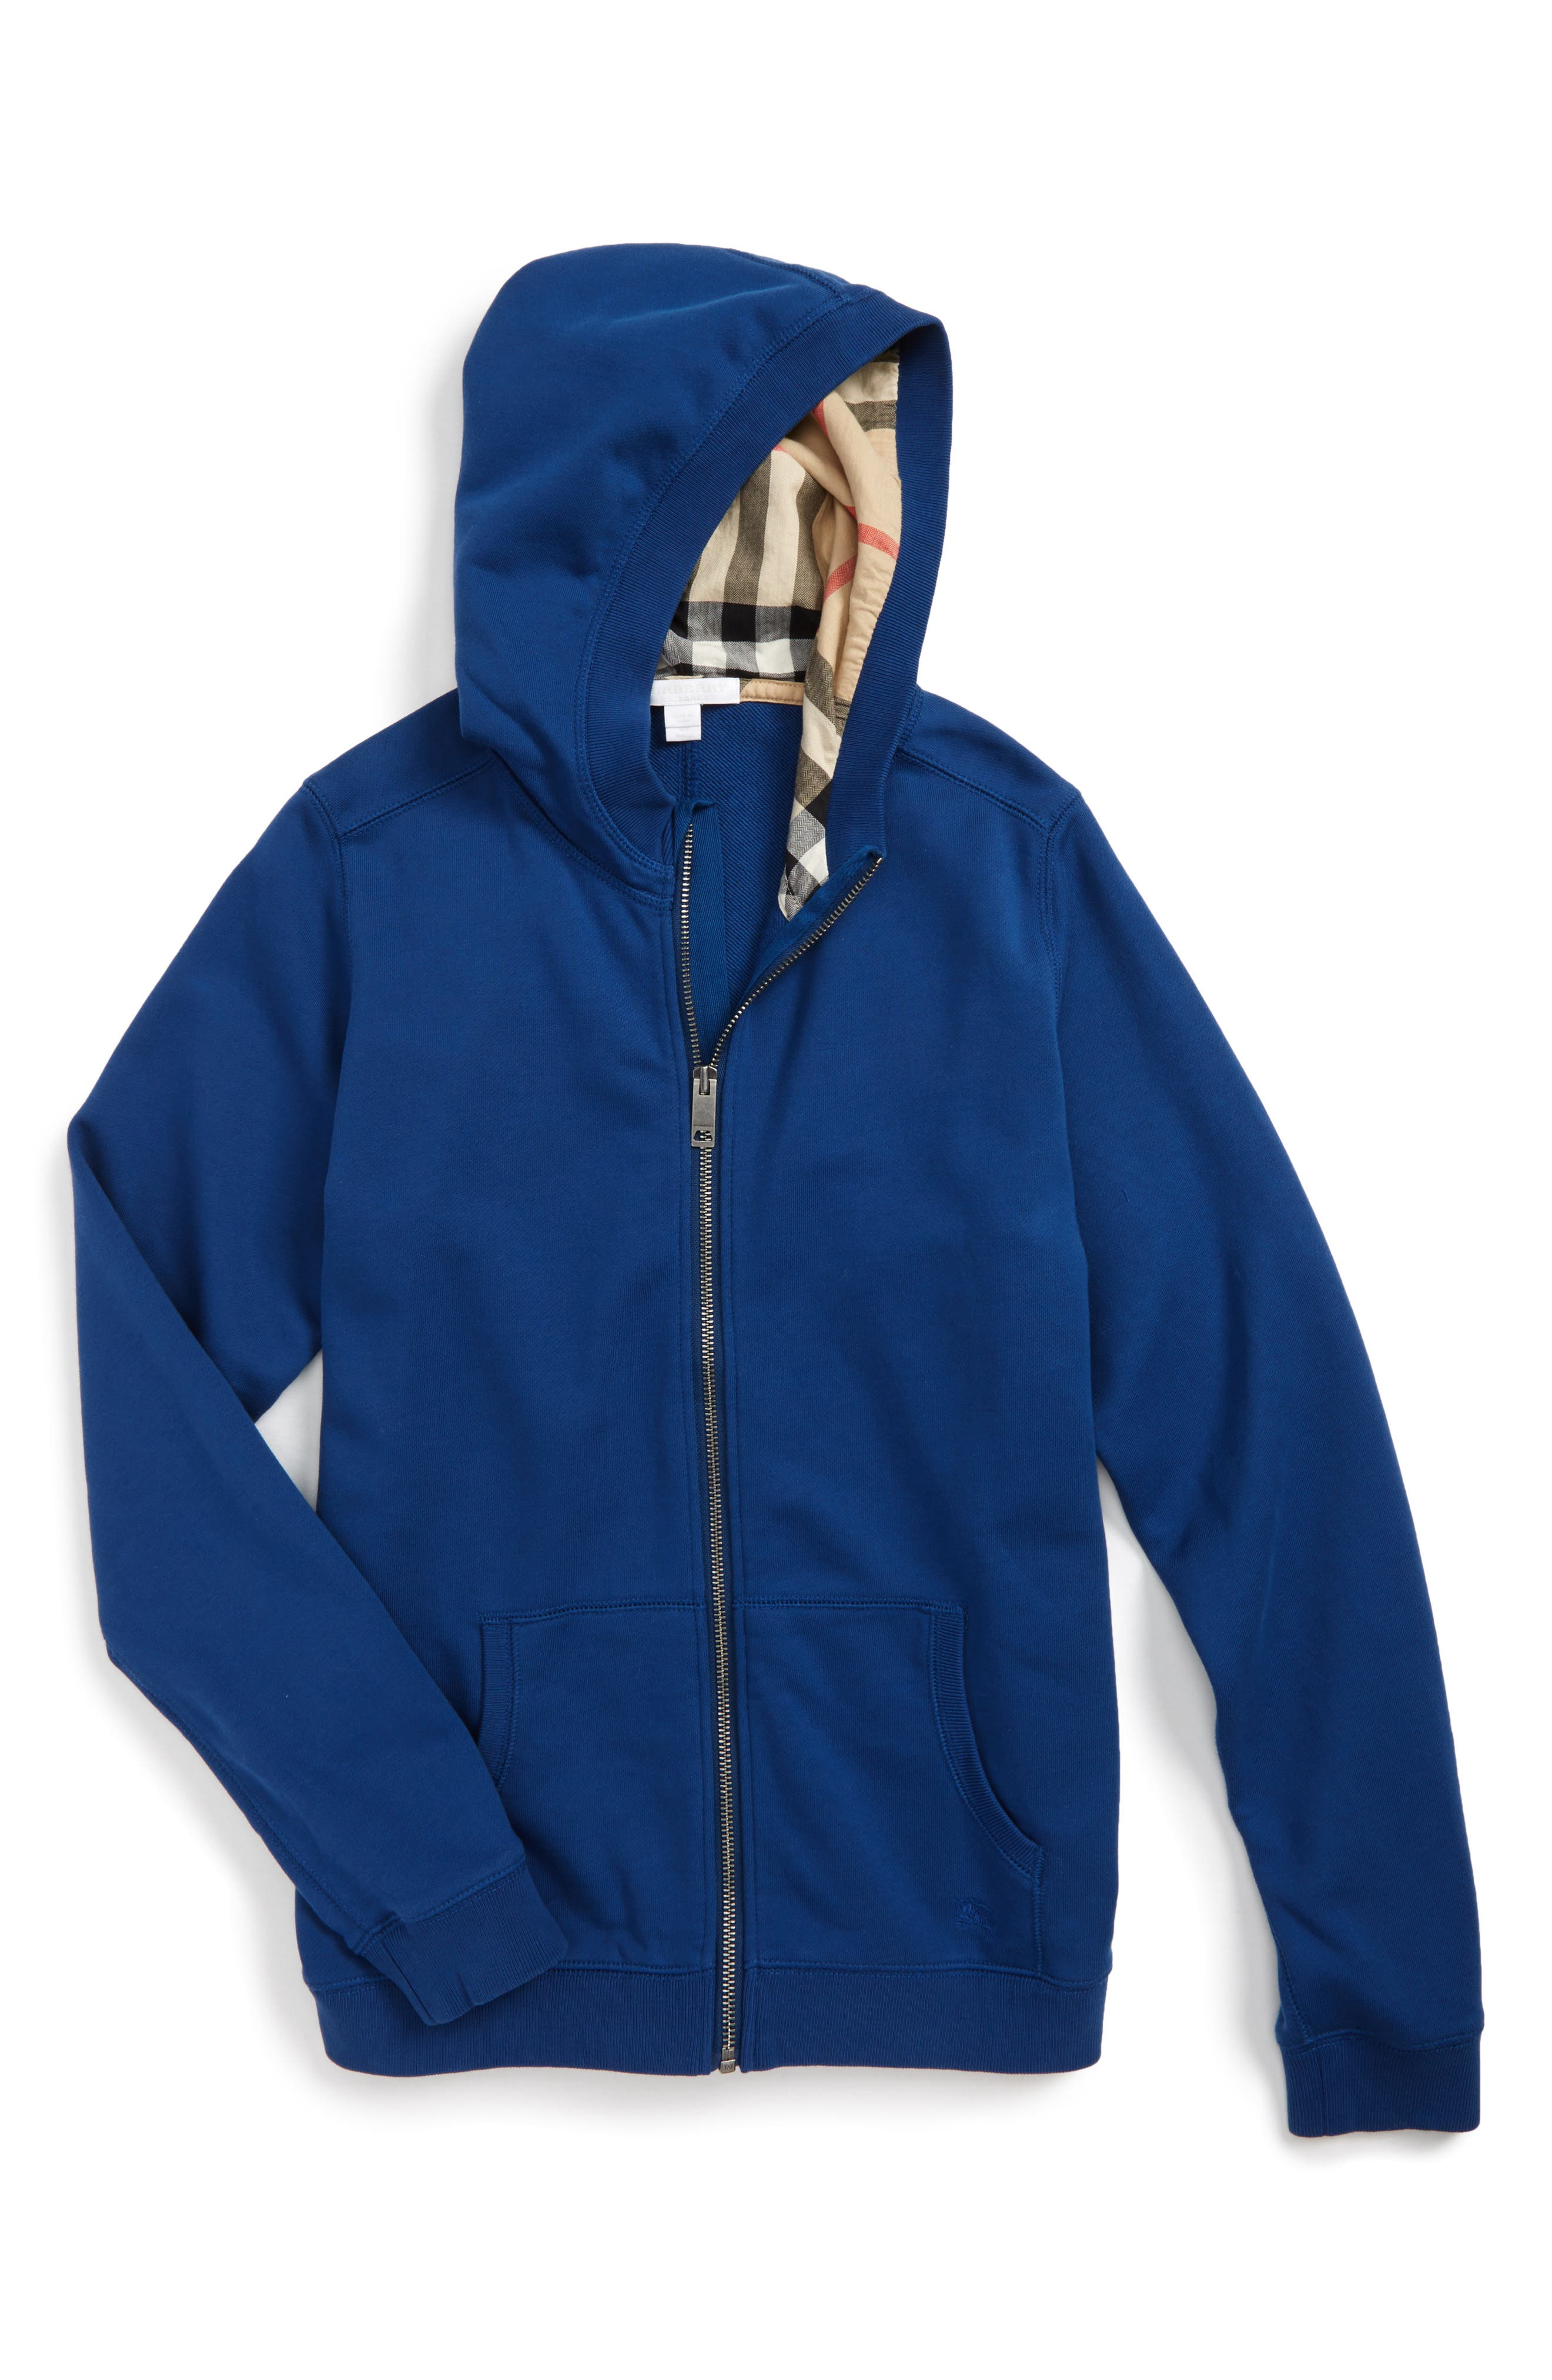 Pearcy Hoodie,                             Main thumbnail 1, color,                             408